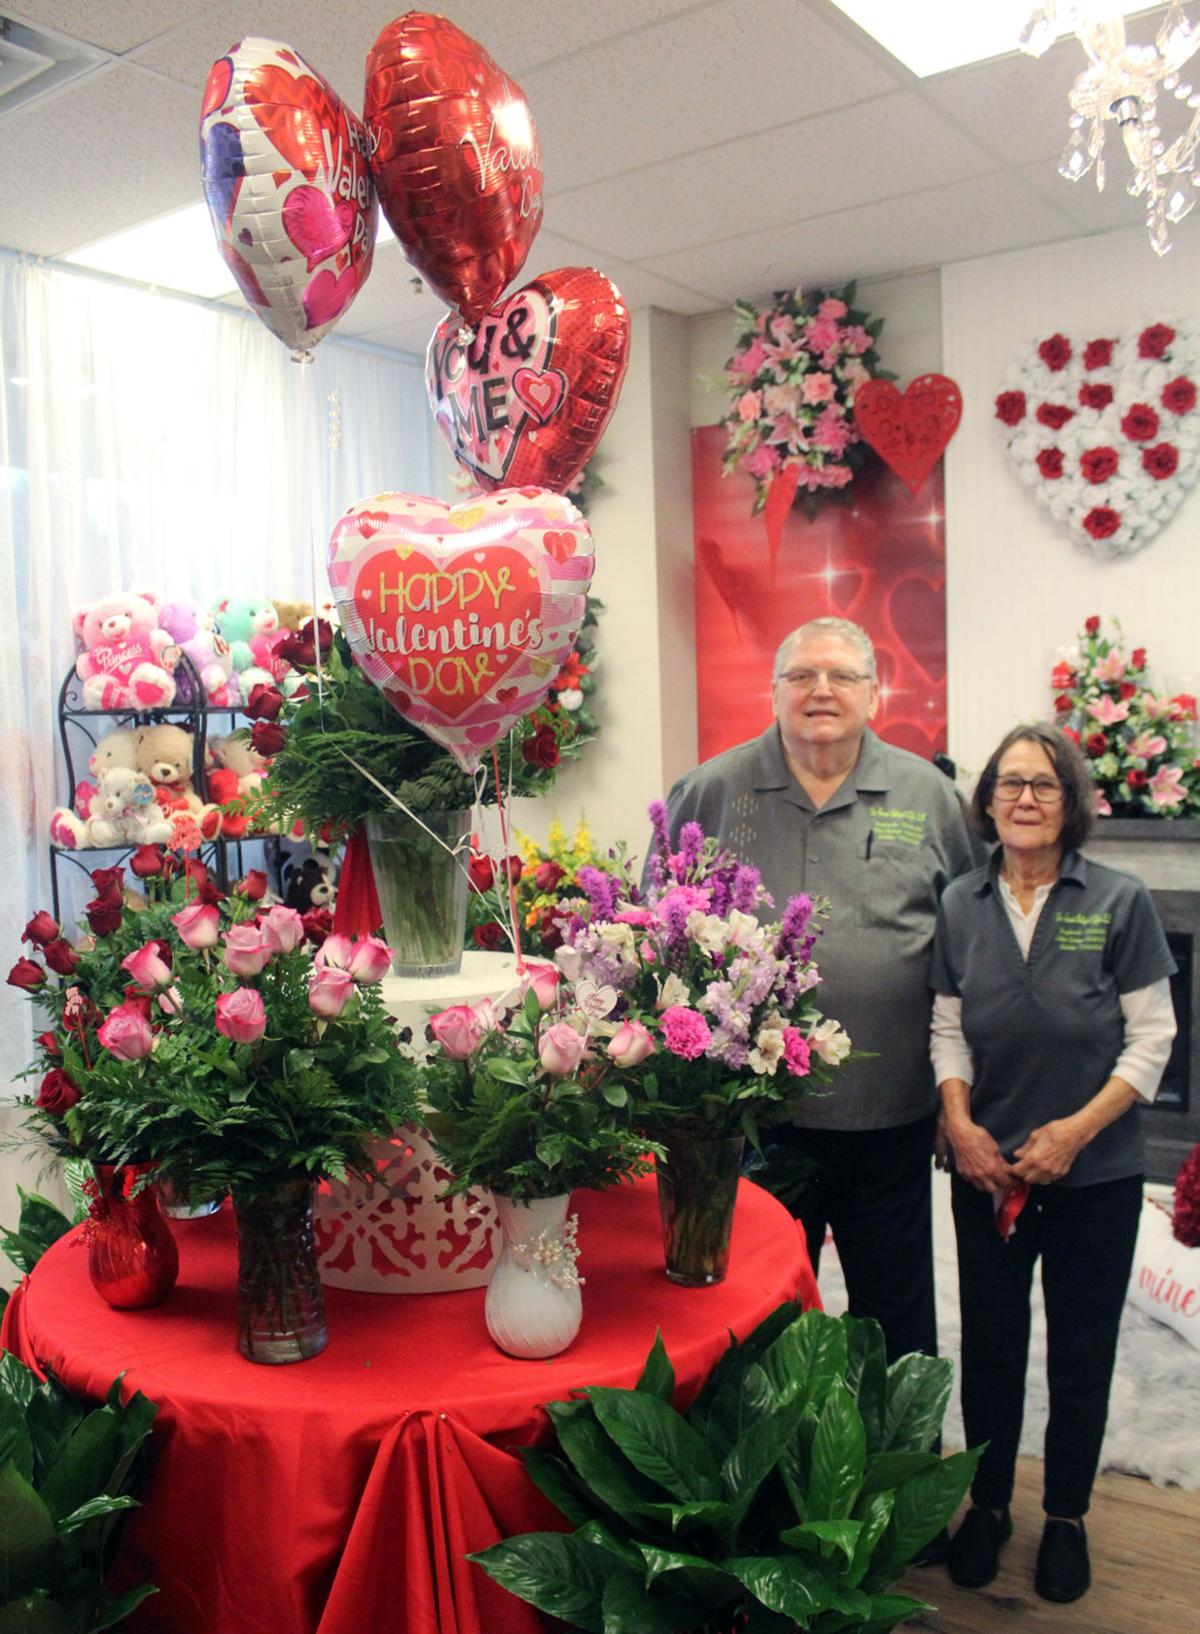 Flower sales bloom for Valentine's Day: Local florists doing brisk business despite shortage caused by COVID